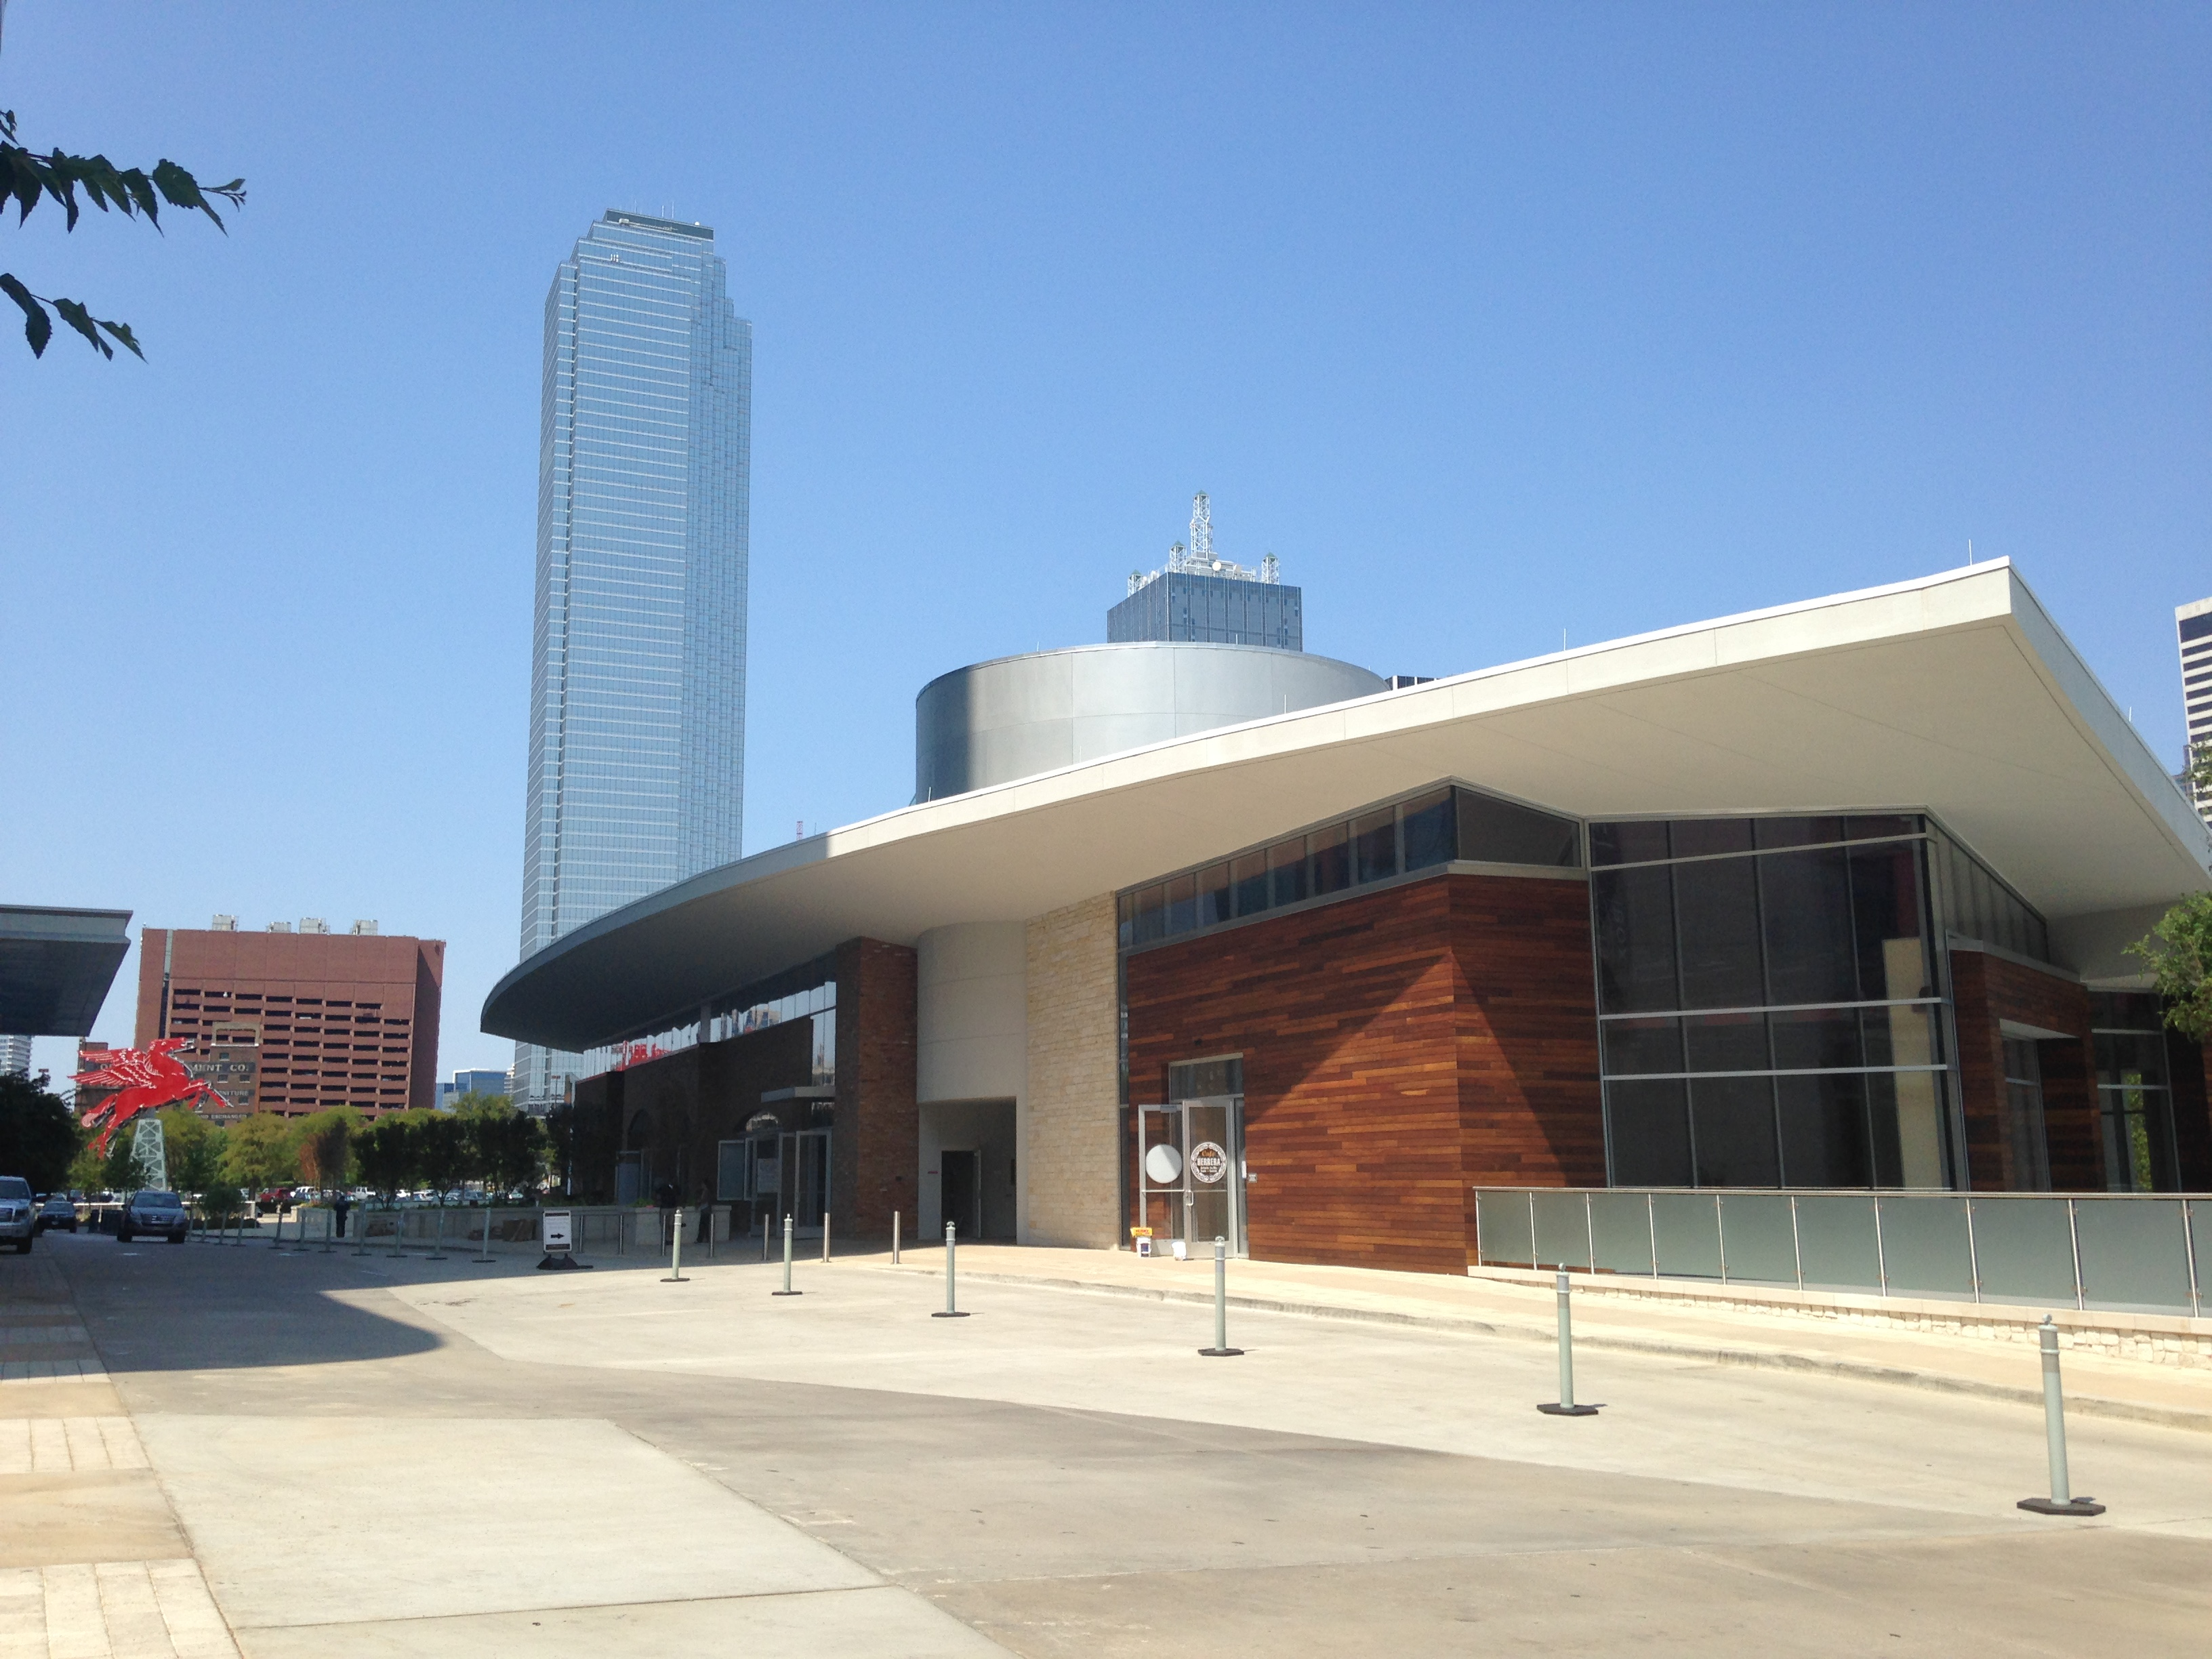 new restaurants opening soon near kay bailey hutchison convention